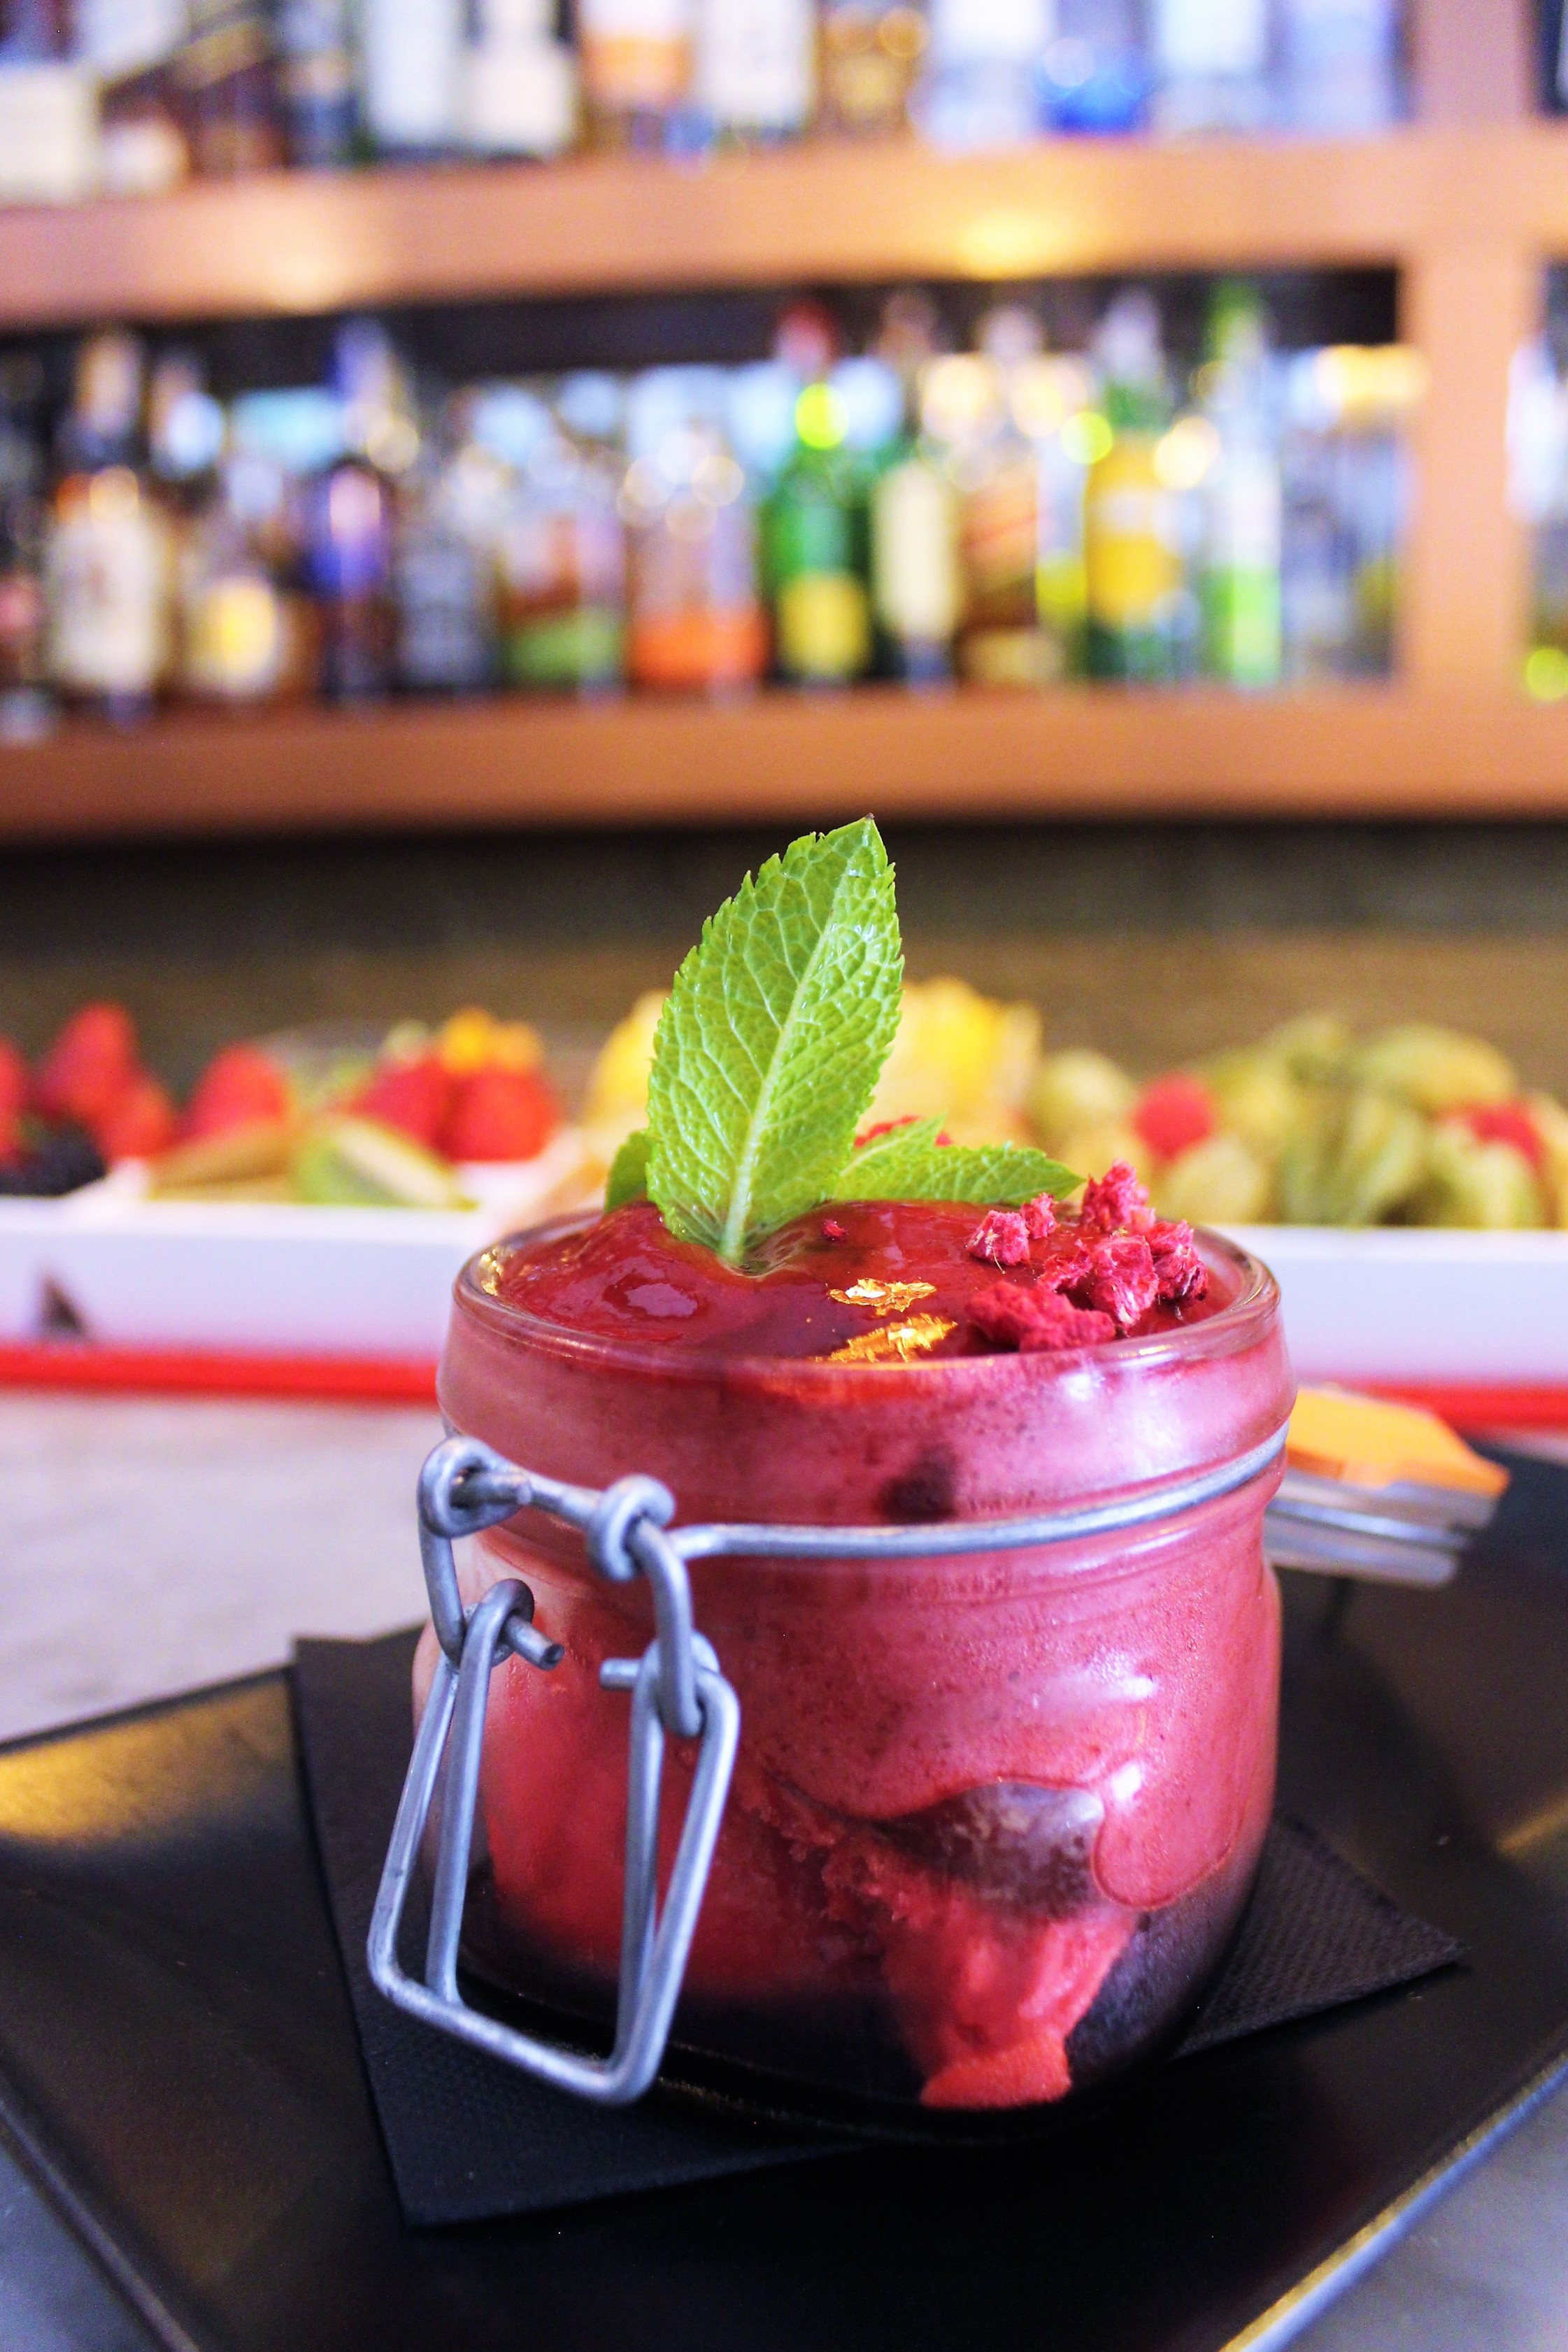 Blackberry Mojito Mousse at Cera 23 in Barcelona